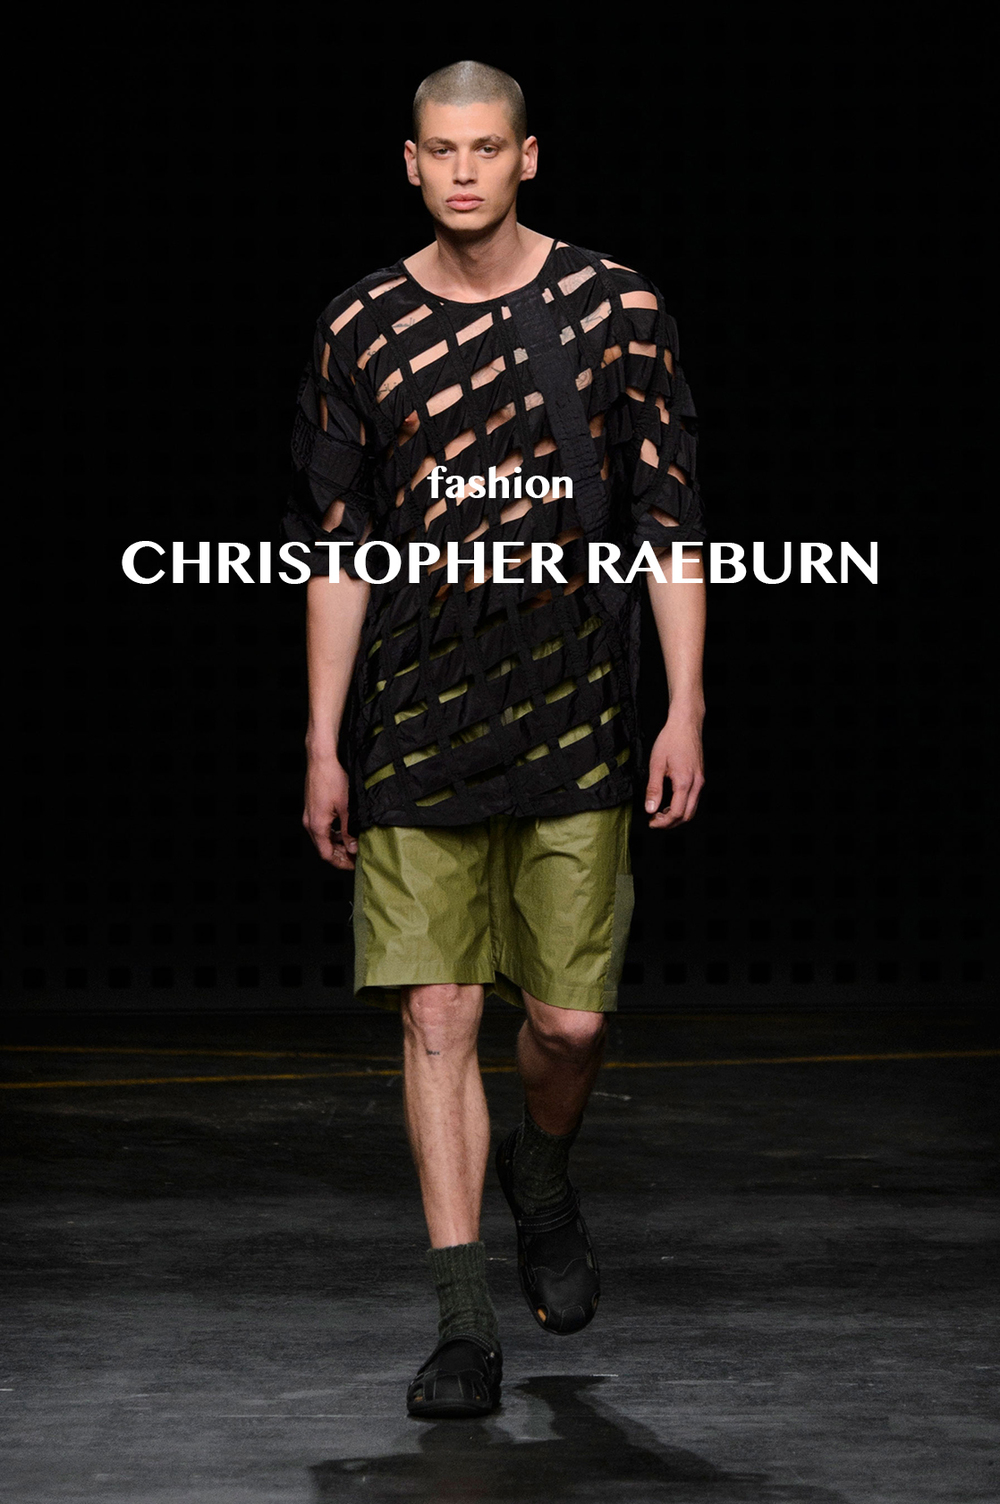 CHRISTOPHER RÆBURN PRESENTS THE SS16 BORNEO/SARAWAK MENSWEAR COLLECTION March 15, 2016